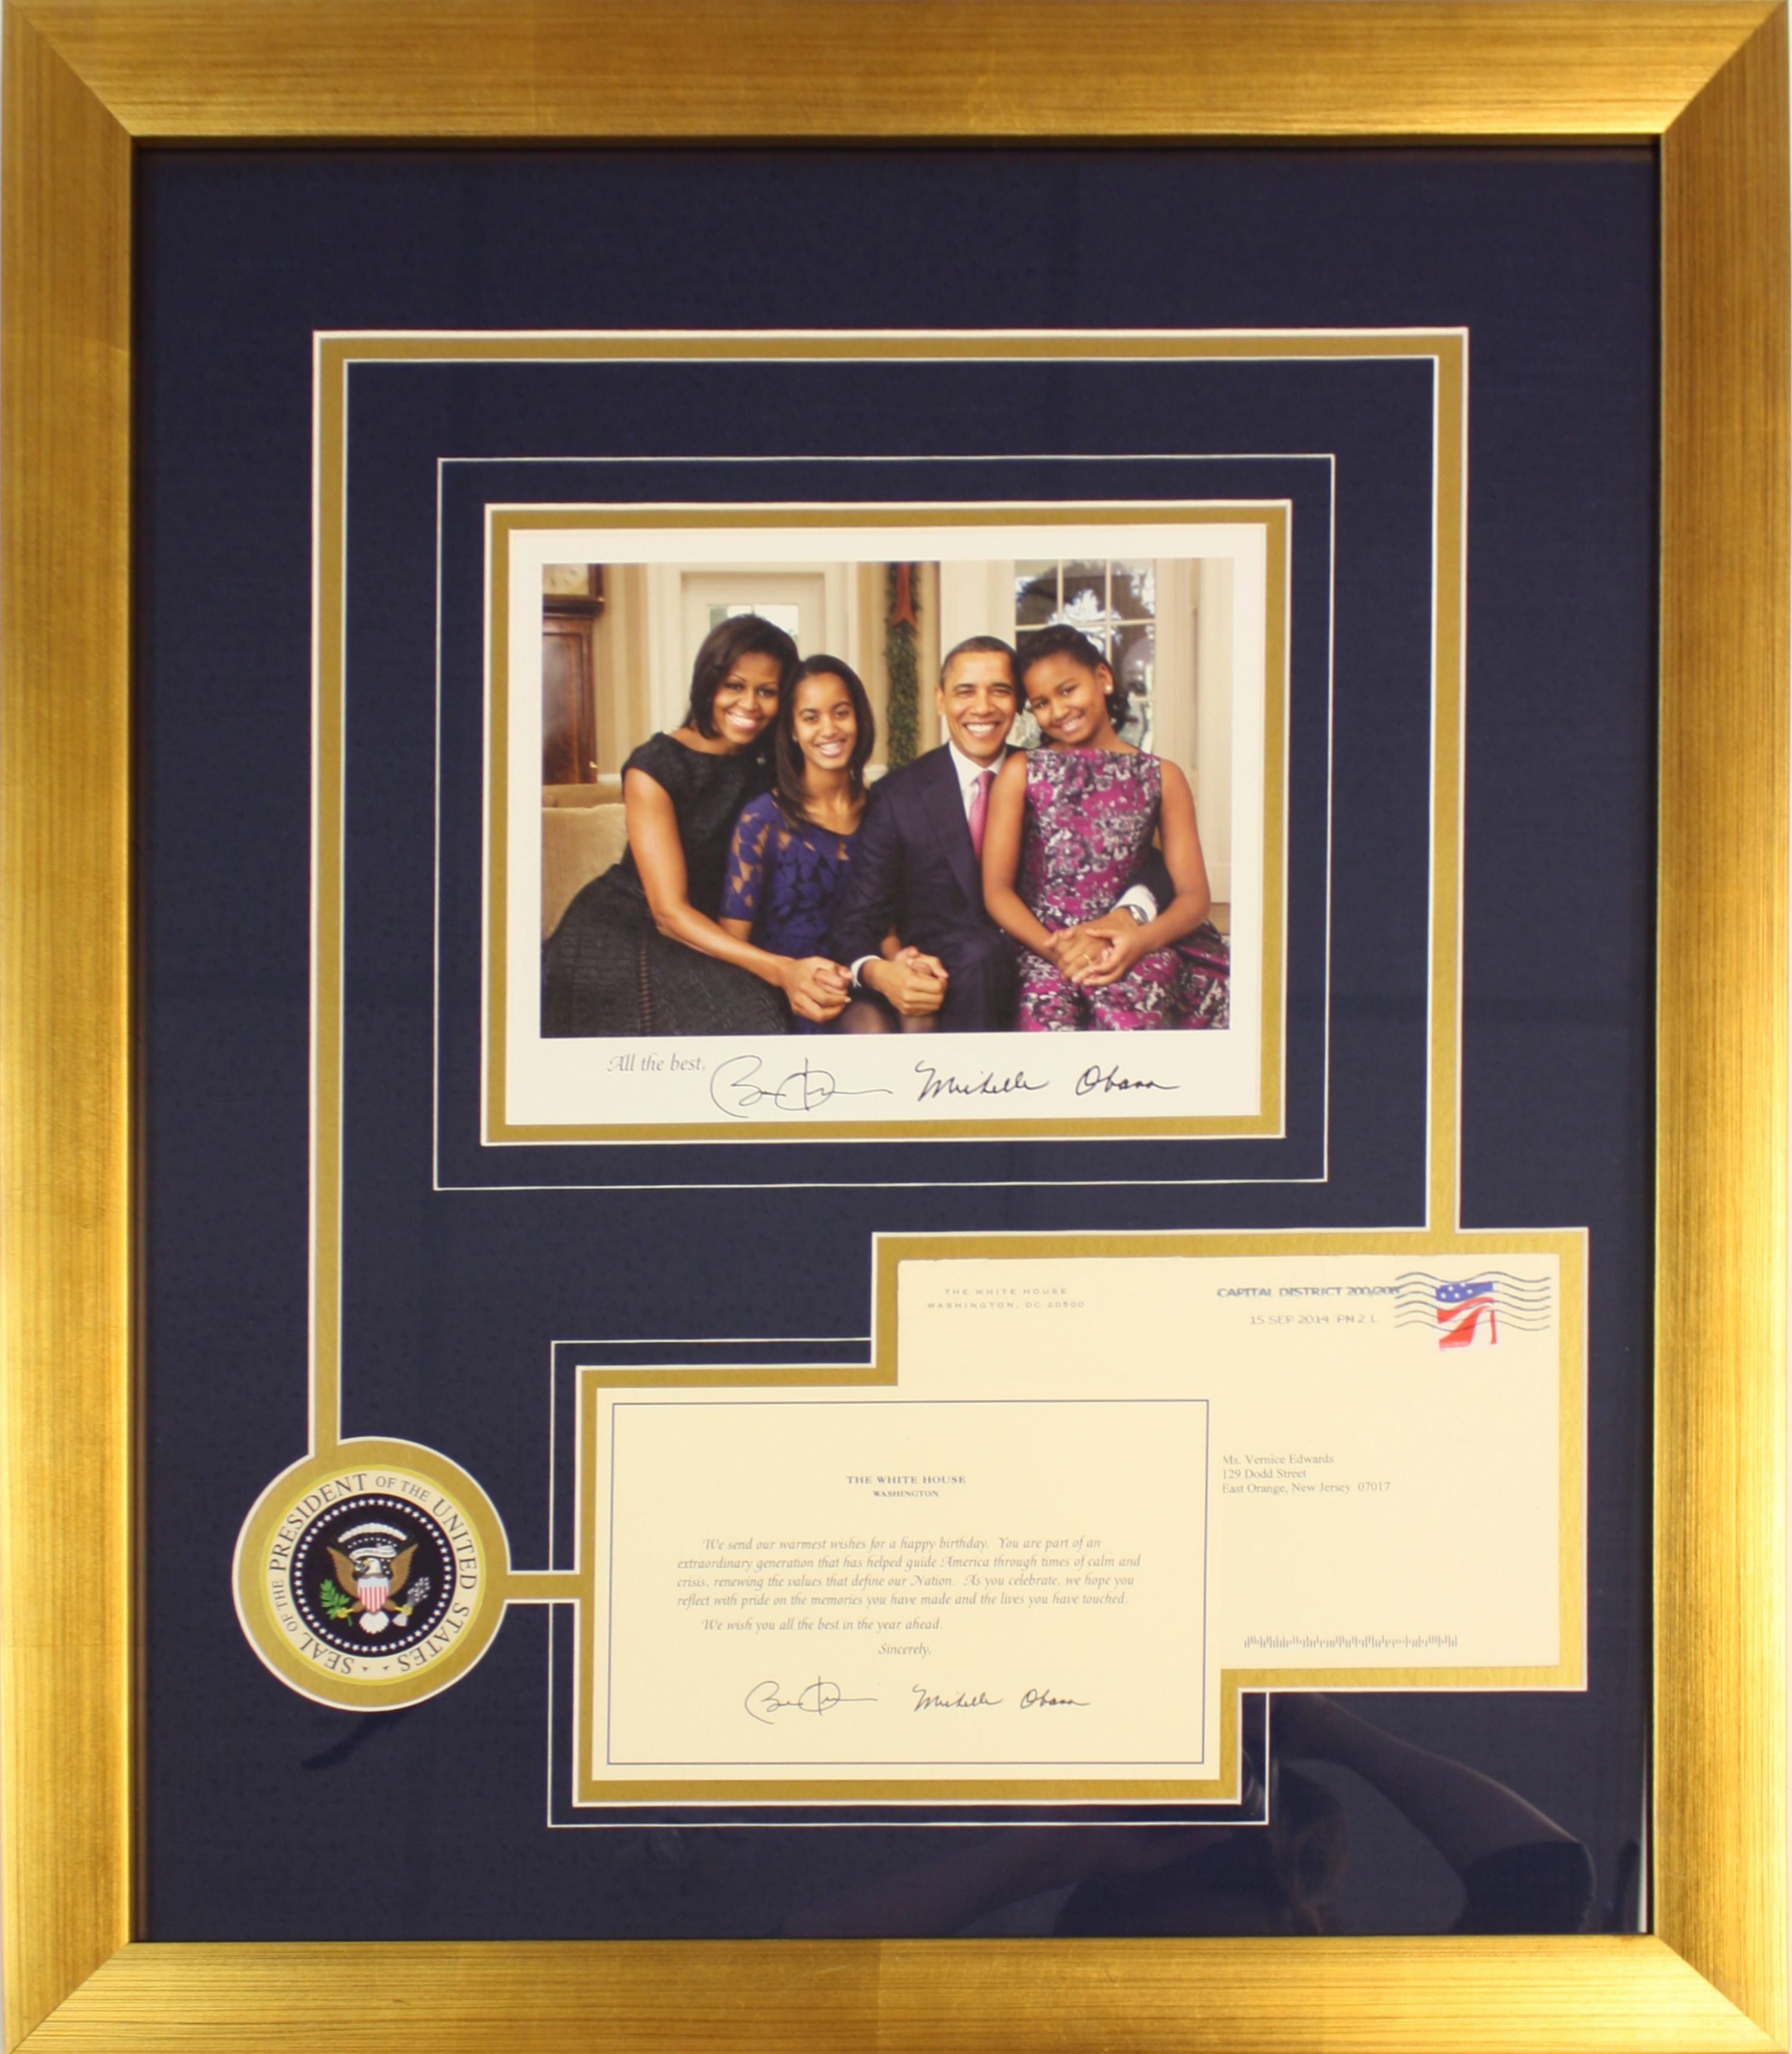 Framed Presidential Photo Accompanied By A Letter Received From The White House Preserved In A Gold Brushed Frame With Blue An Unique Framing Frame Framed Art